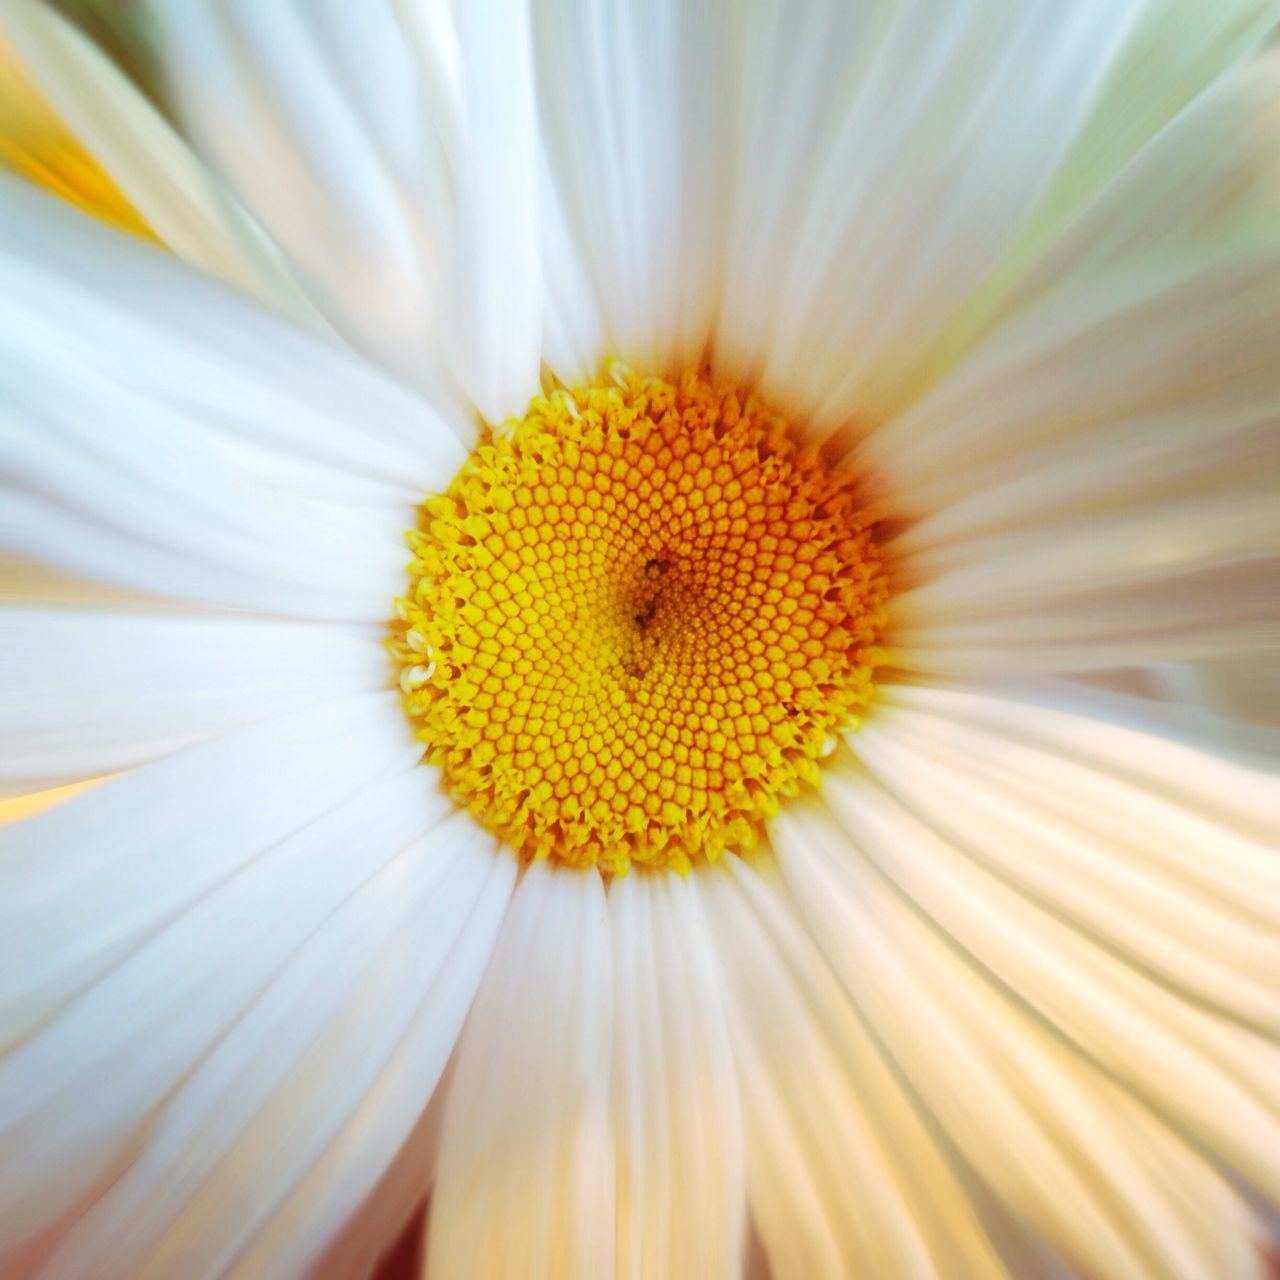 flower, fragility, petal, beauty in nature, pollen, nature, freshness, flower head, yellow, close-up, no people, growth, day, outdoors, animal themes